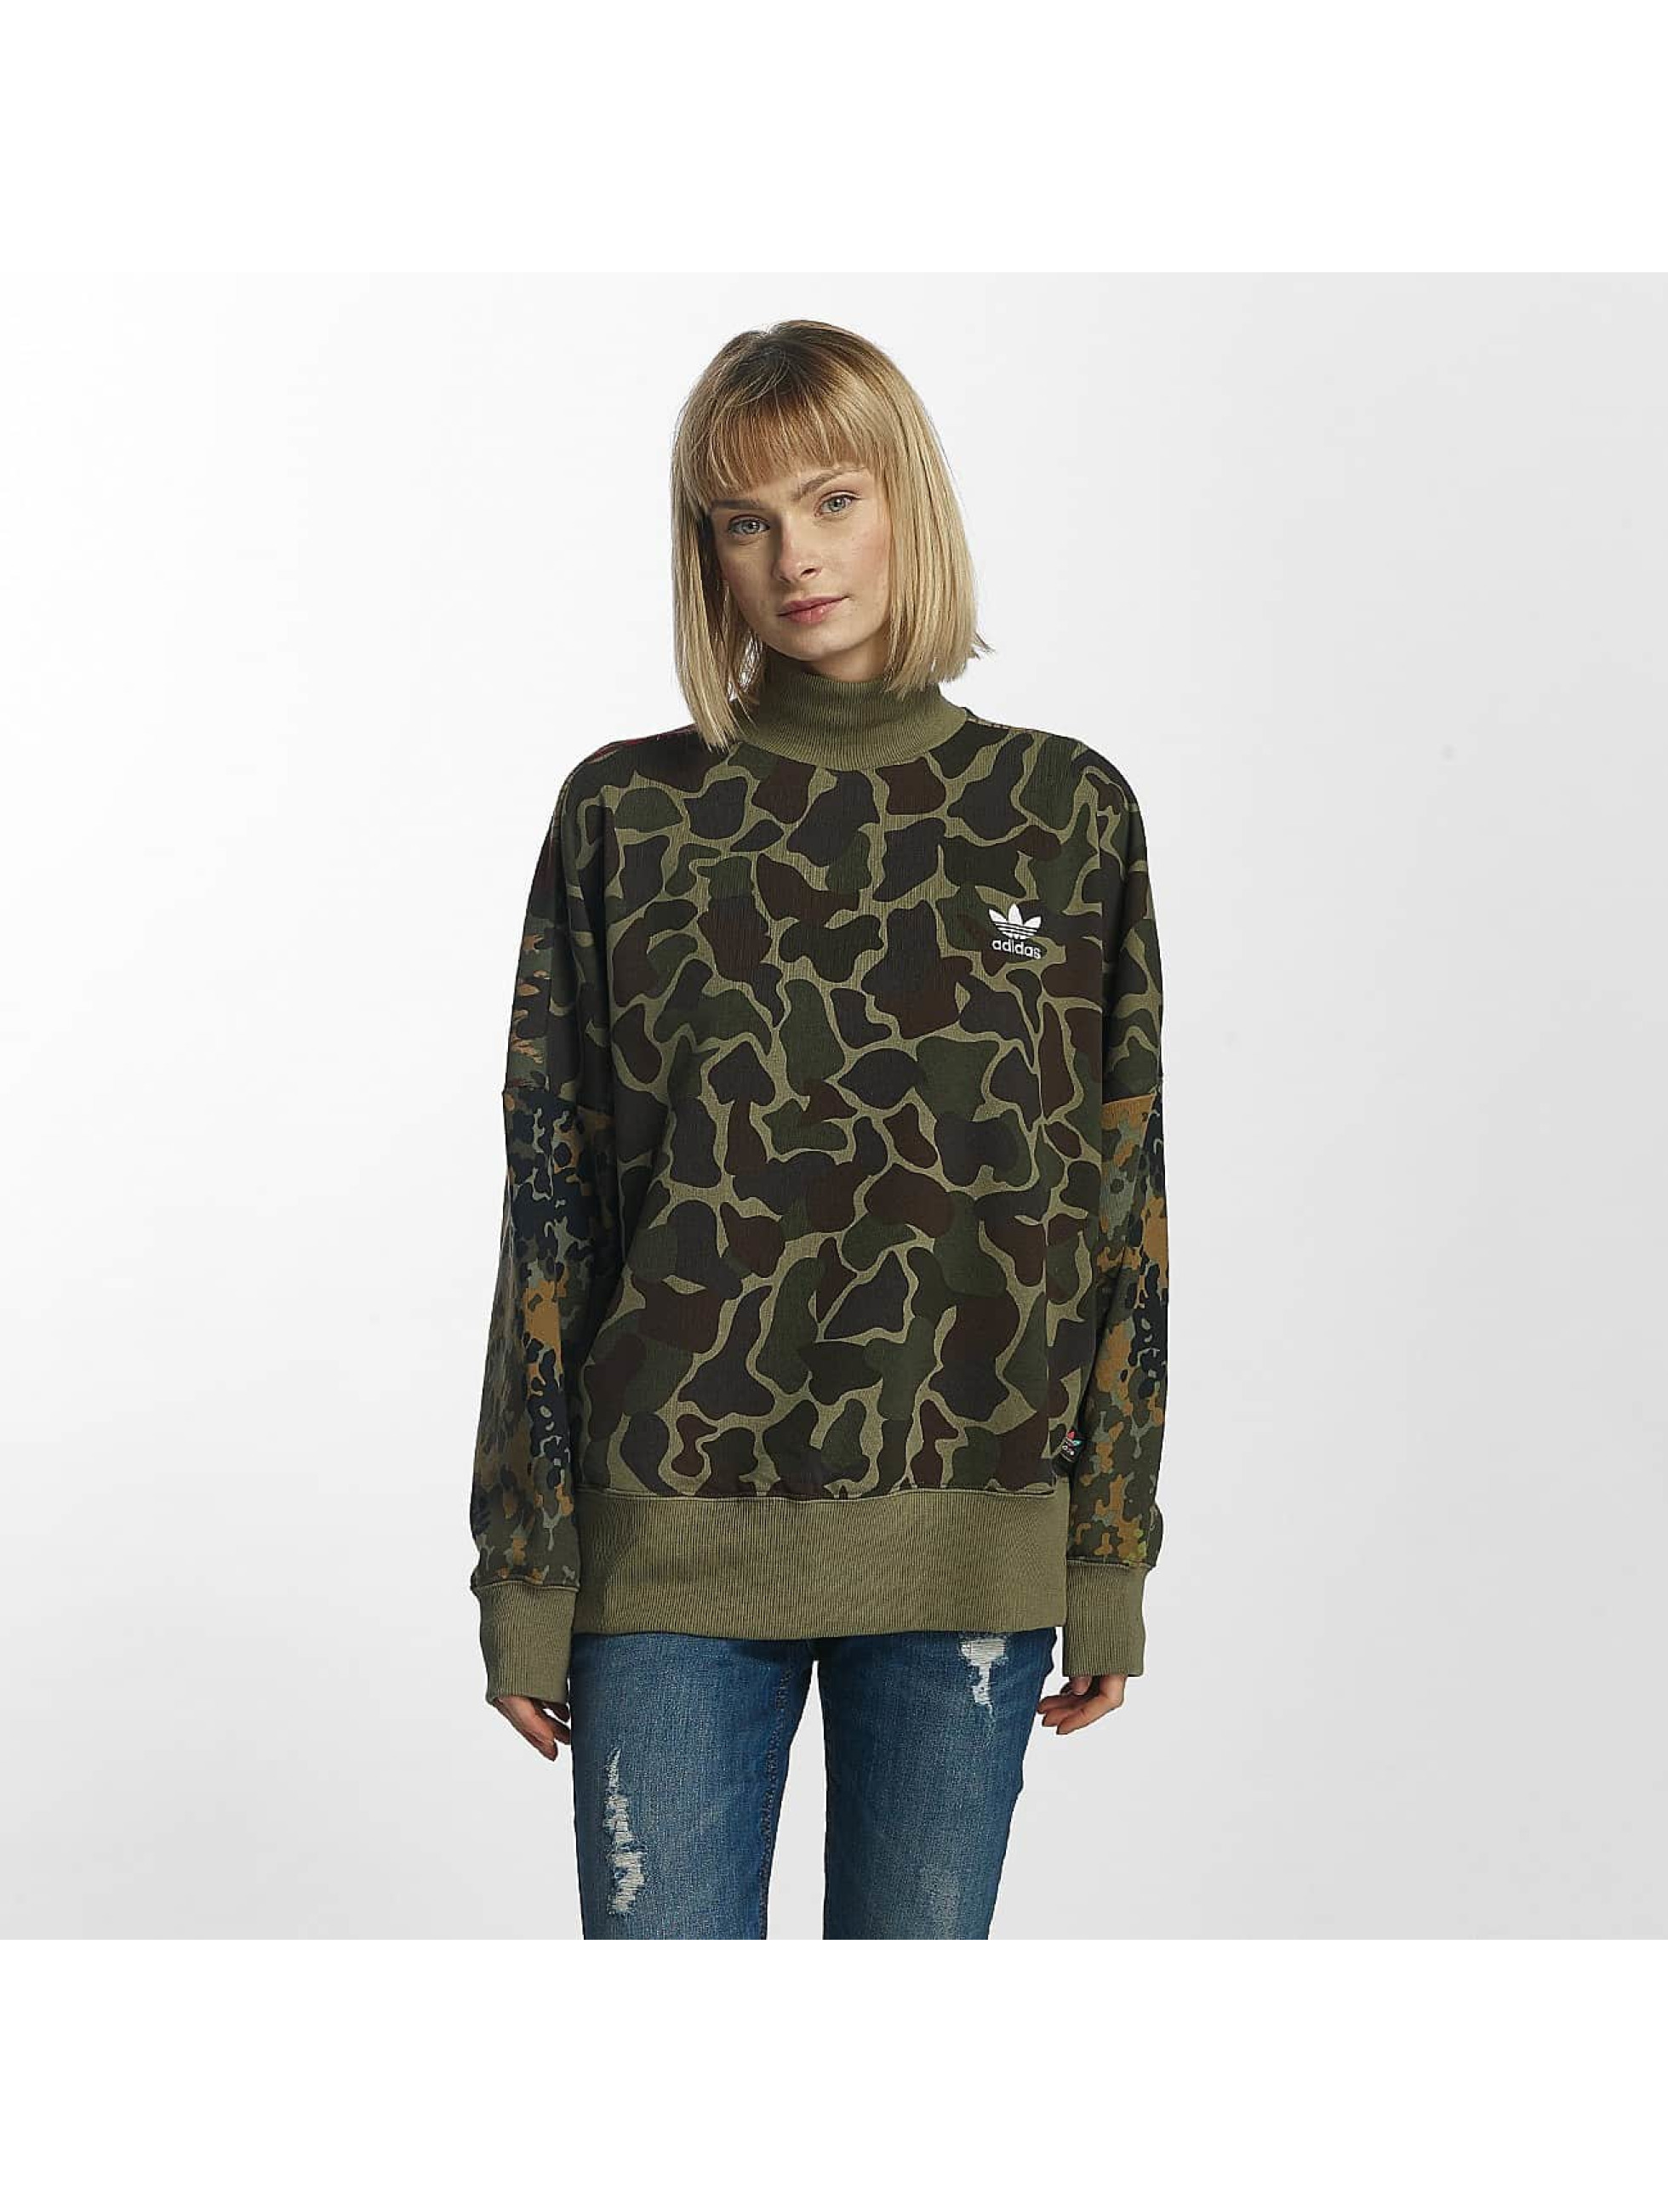 adidas pw hu hikingg camouflage femme sweat pull adidas acheter pas cher haut 369419. Black Bedroom Furniture Sets. Home Design Ideas